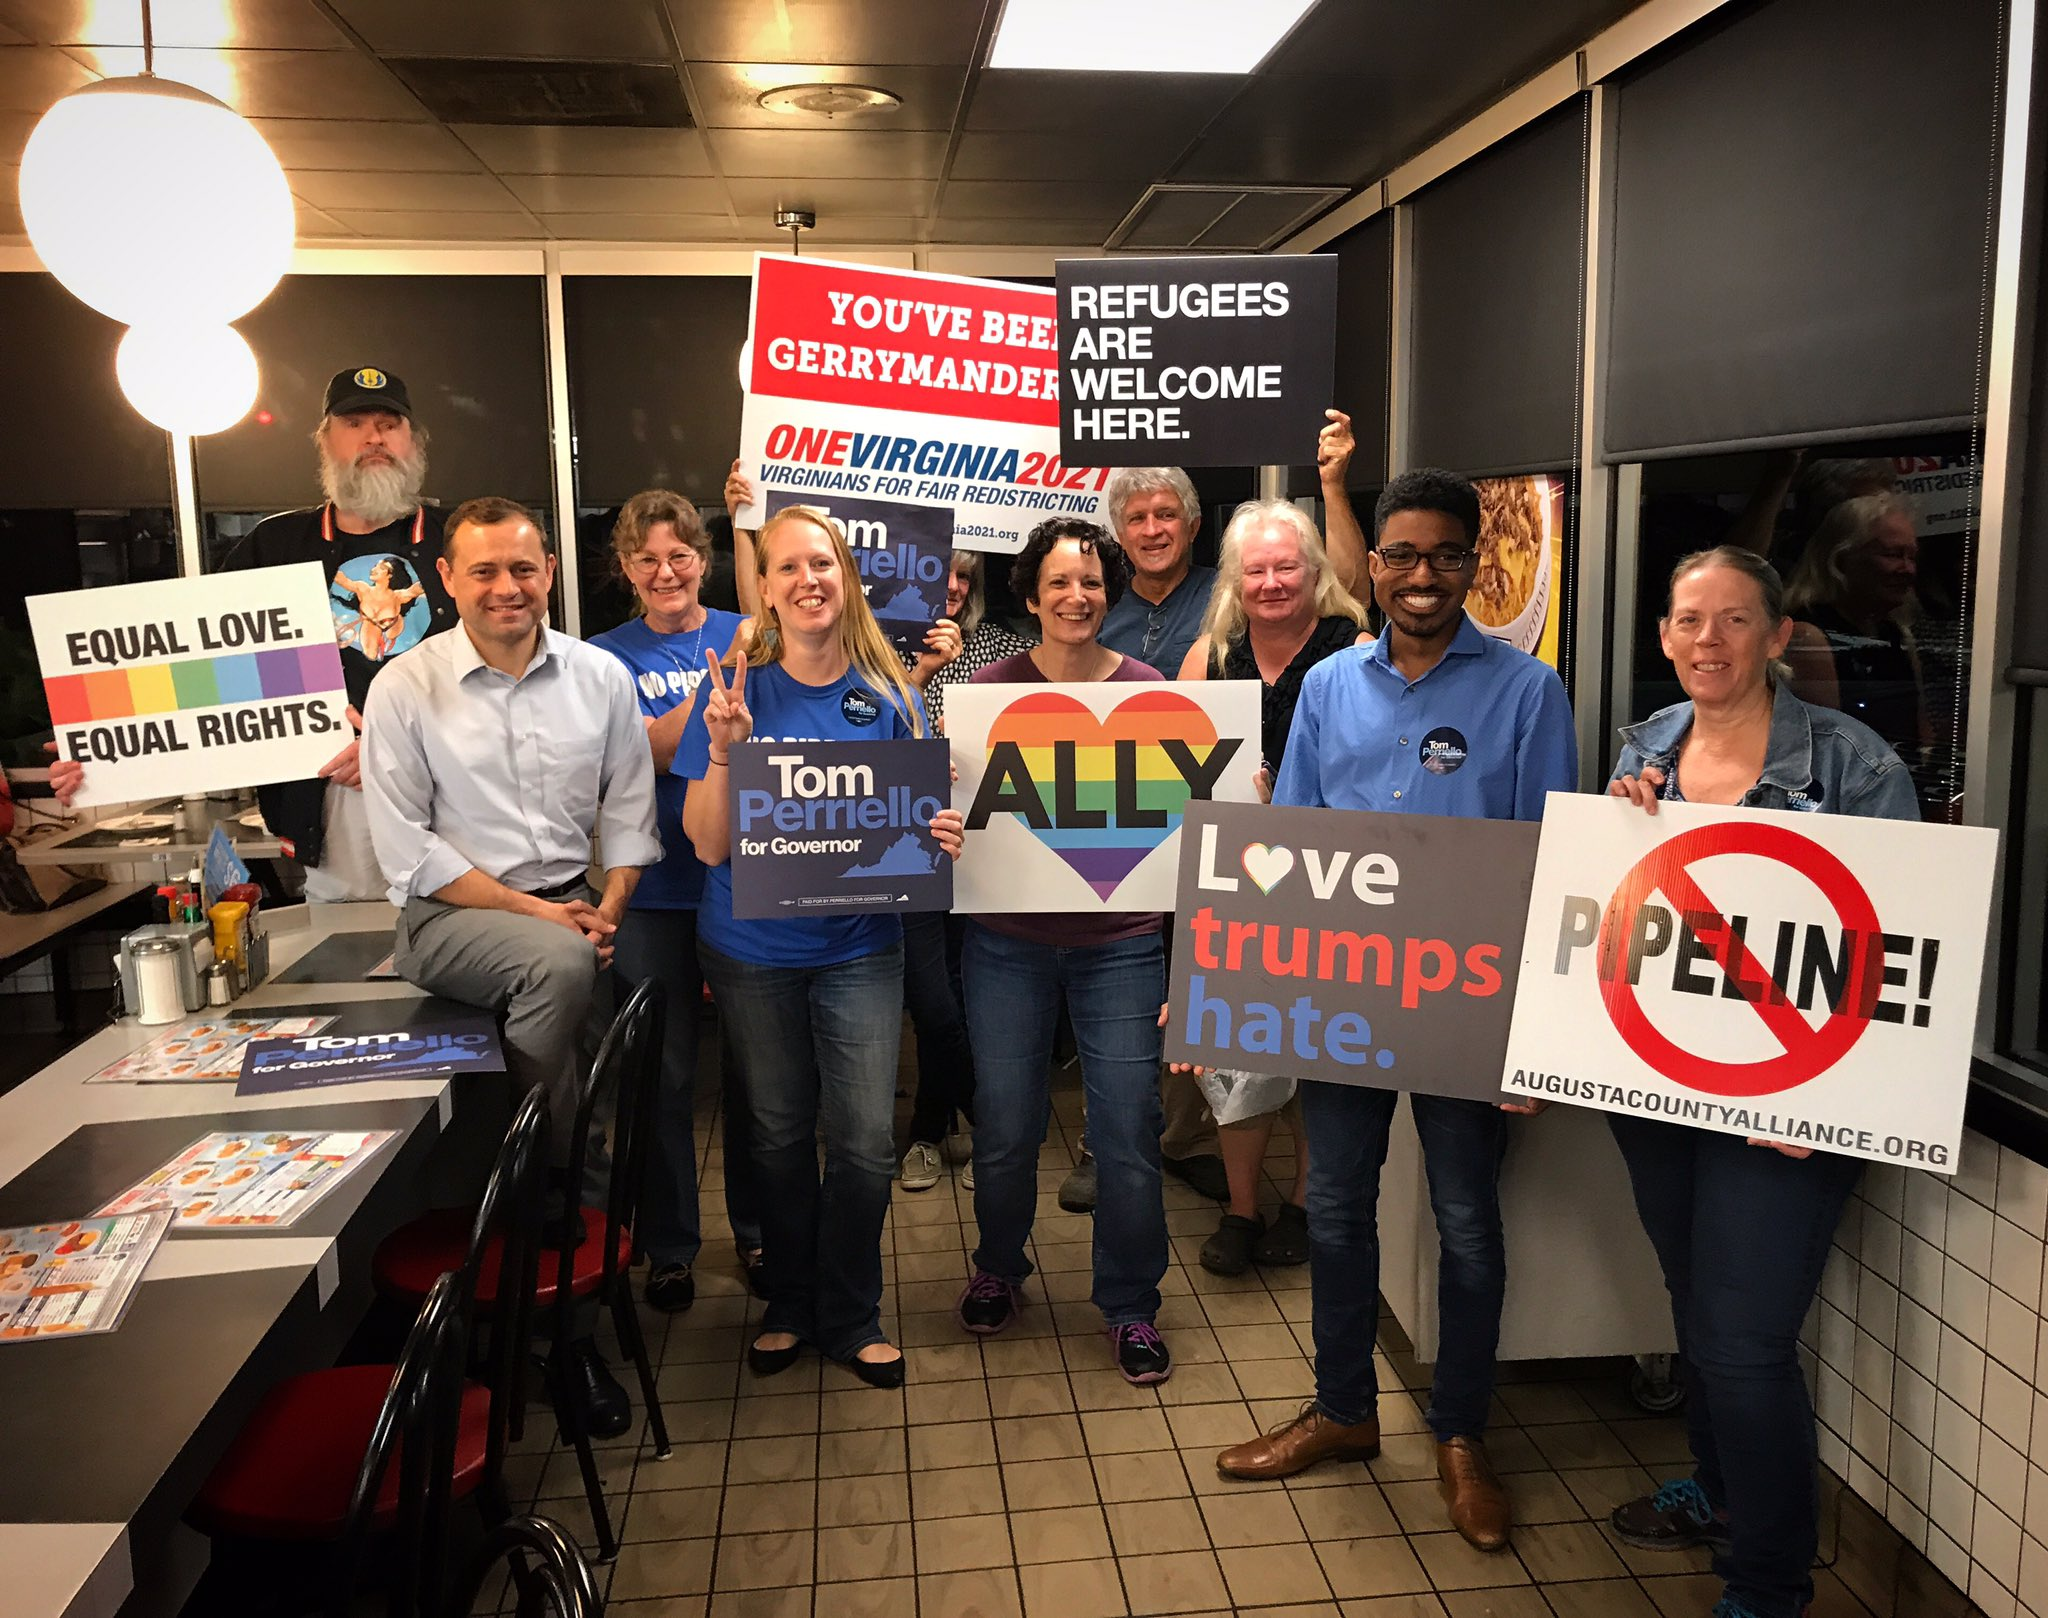 Quite a crew of Virginia progressives at the @WaffleHouse in Waynesboro this morning! 3 hours to go! #24HoursOfTom https://t.co/0aMDgdUVJw